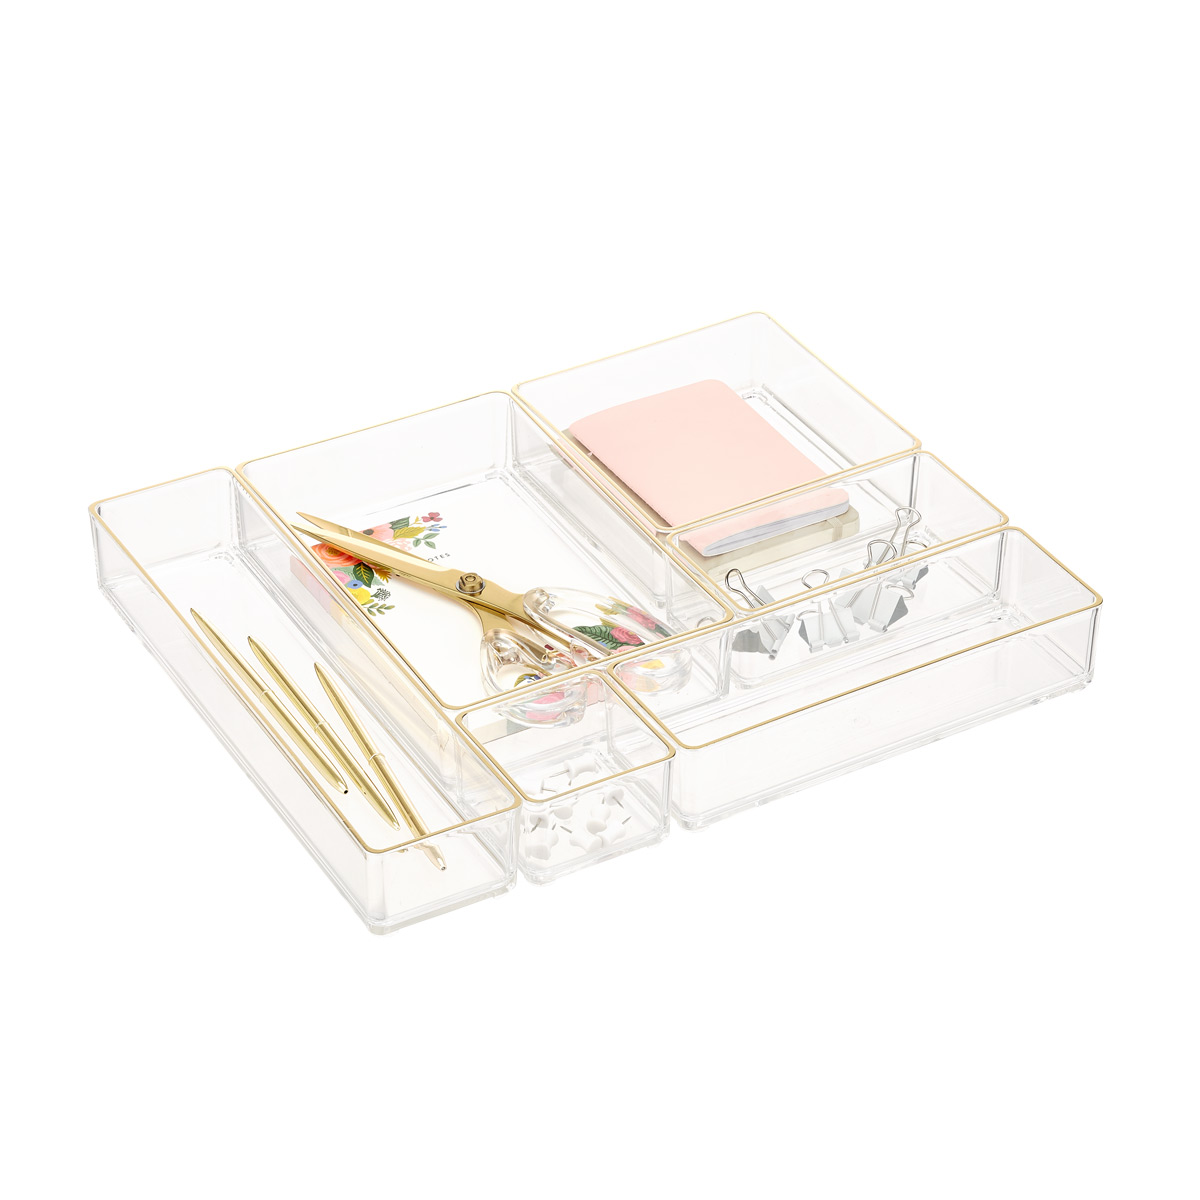 Clear Acrylic Stackable Drawer Organizers Gold Trim Set of 6